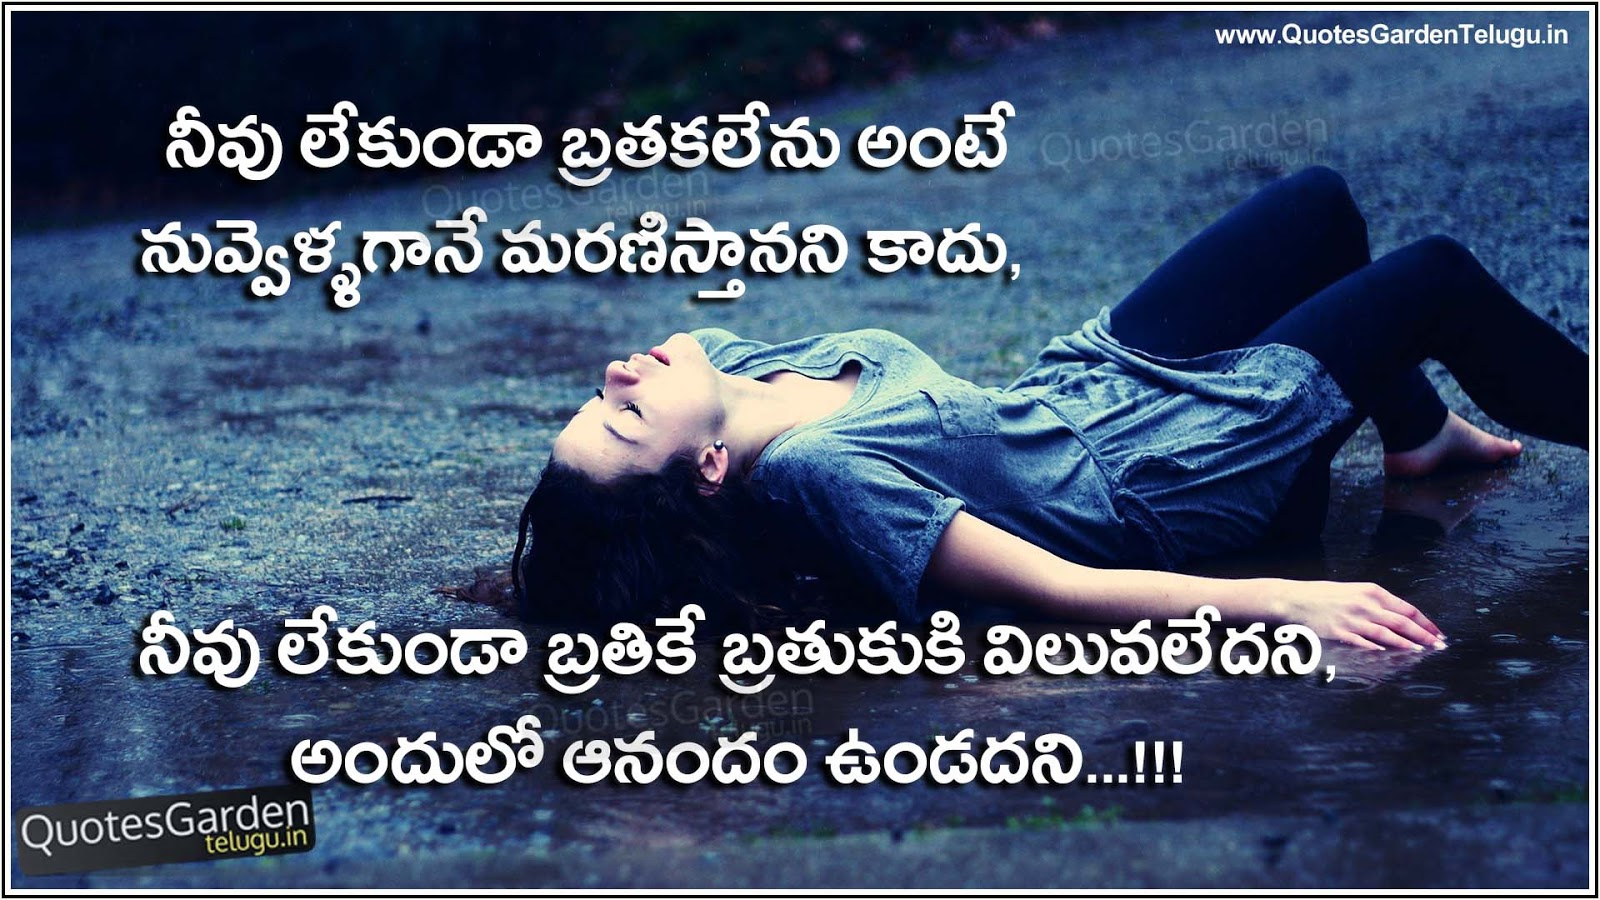 Telugu Love Quotes Inspiration Telugu Love Quotations With Beautiful Love Wallpapers  Quotes